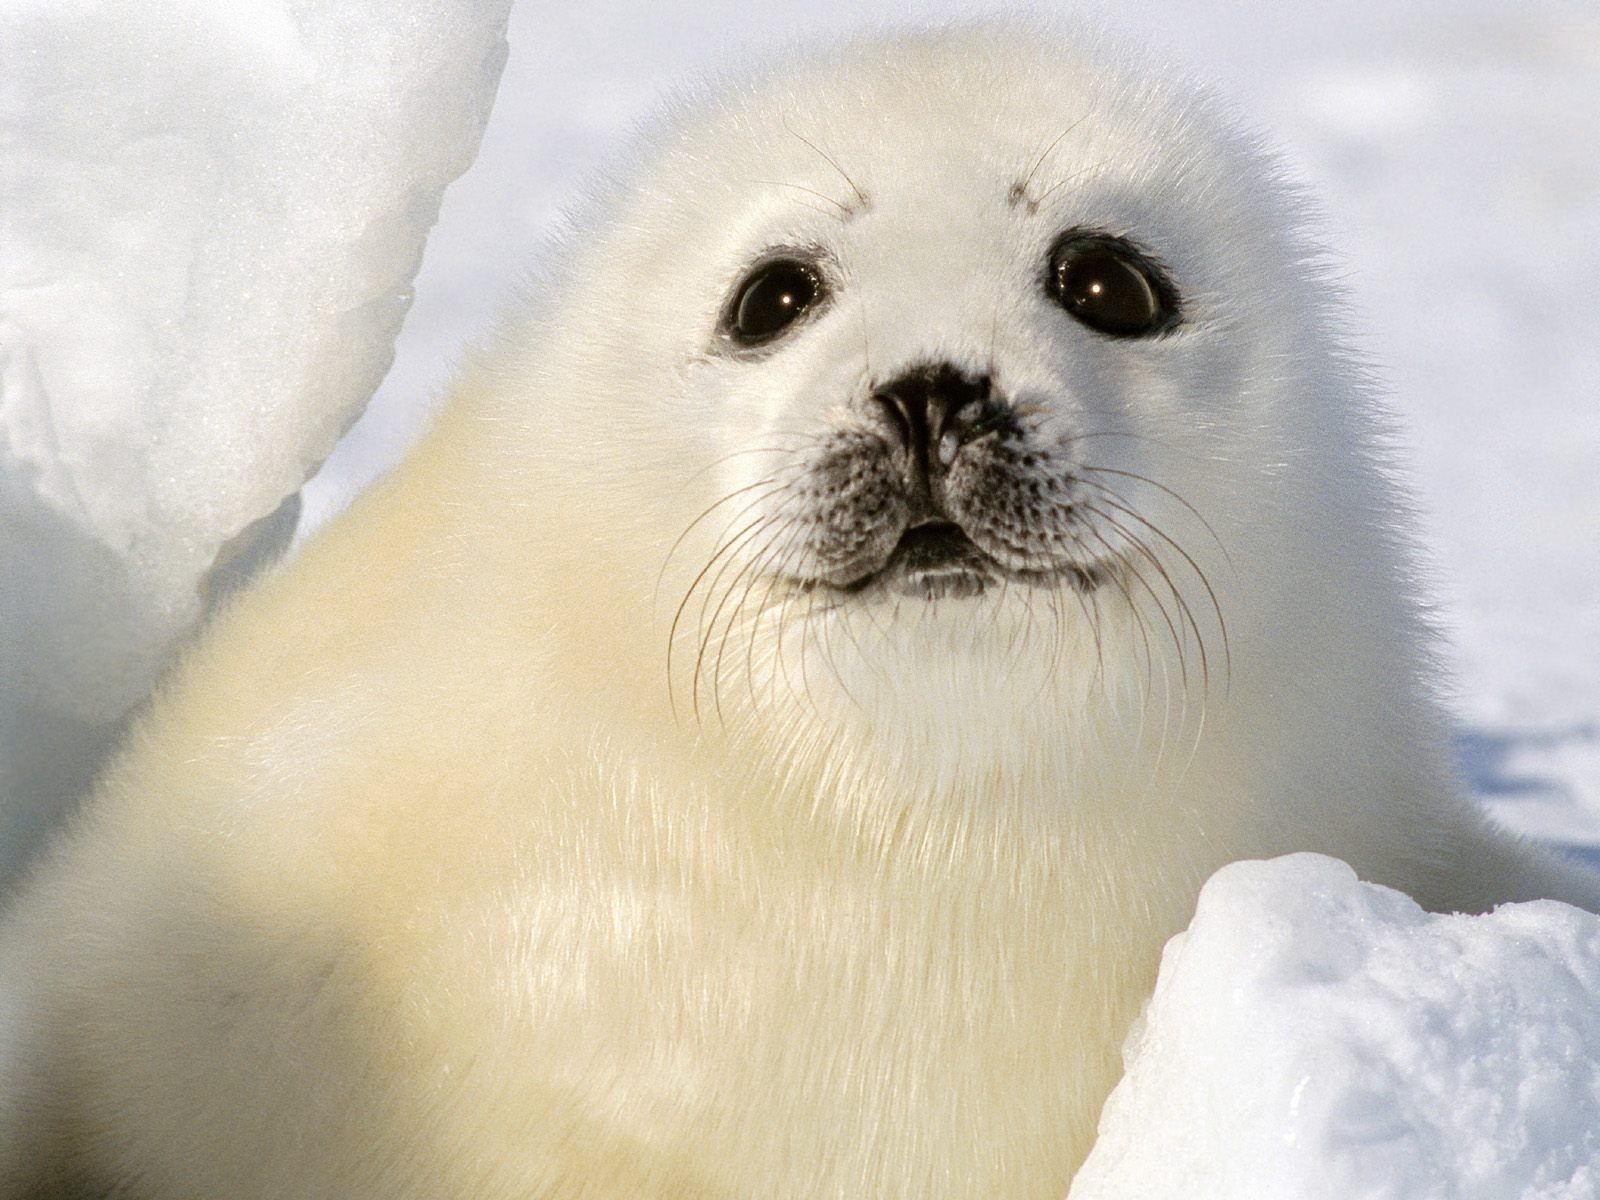 135014 download wallpaper Animals, Seal, Funny, Kid, Tot screensavers and pictures for free